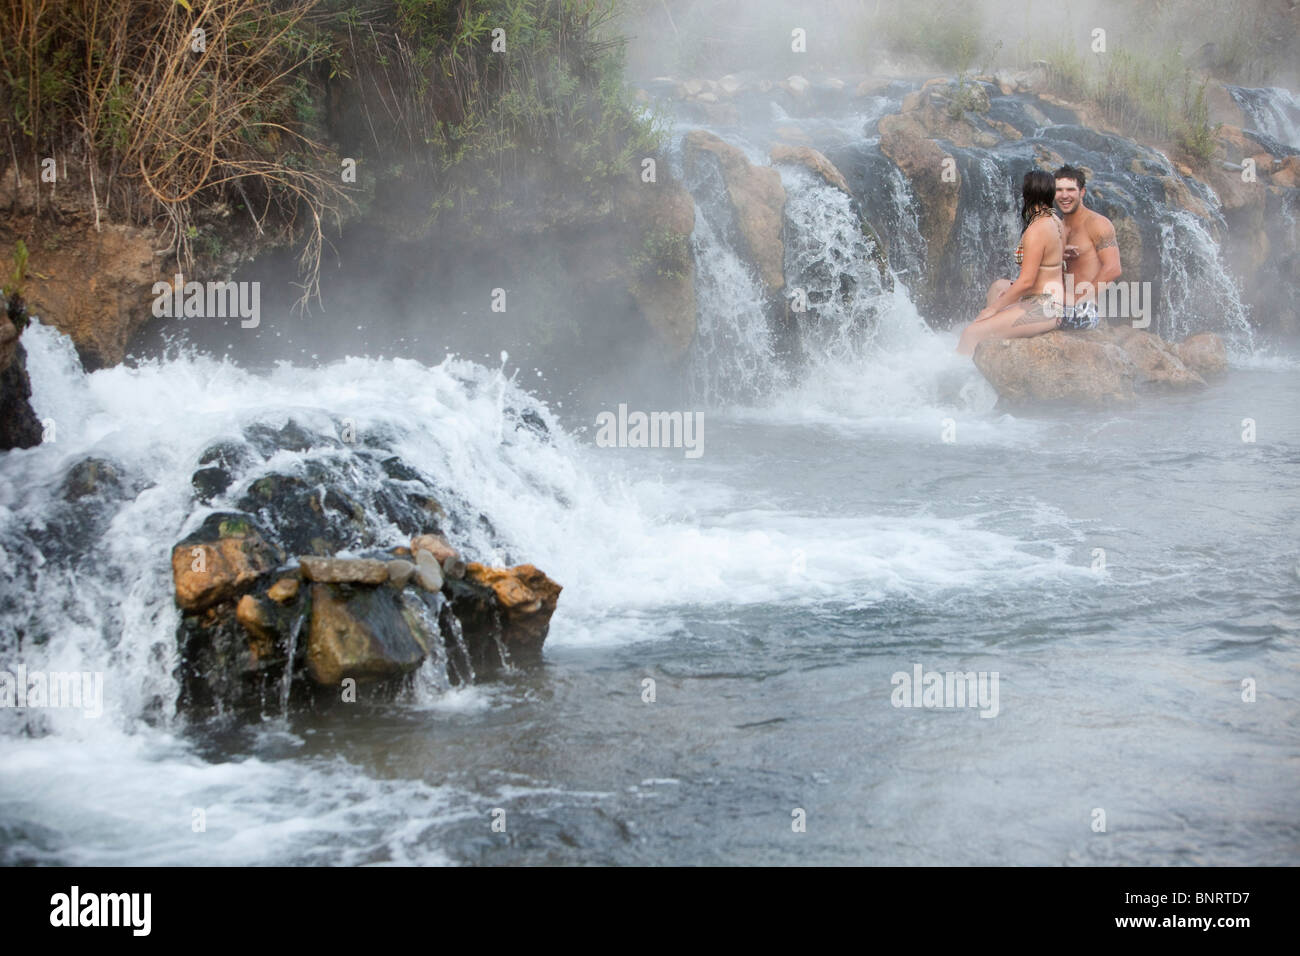 A married couple enjoys natural hot springs in Montana. - Stock Image